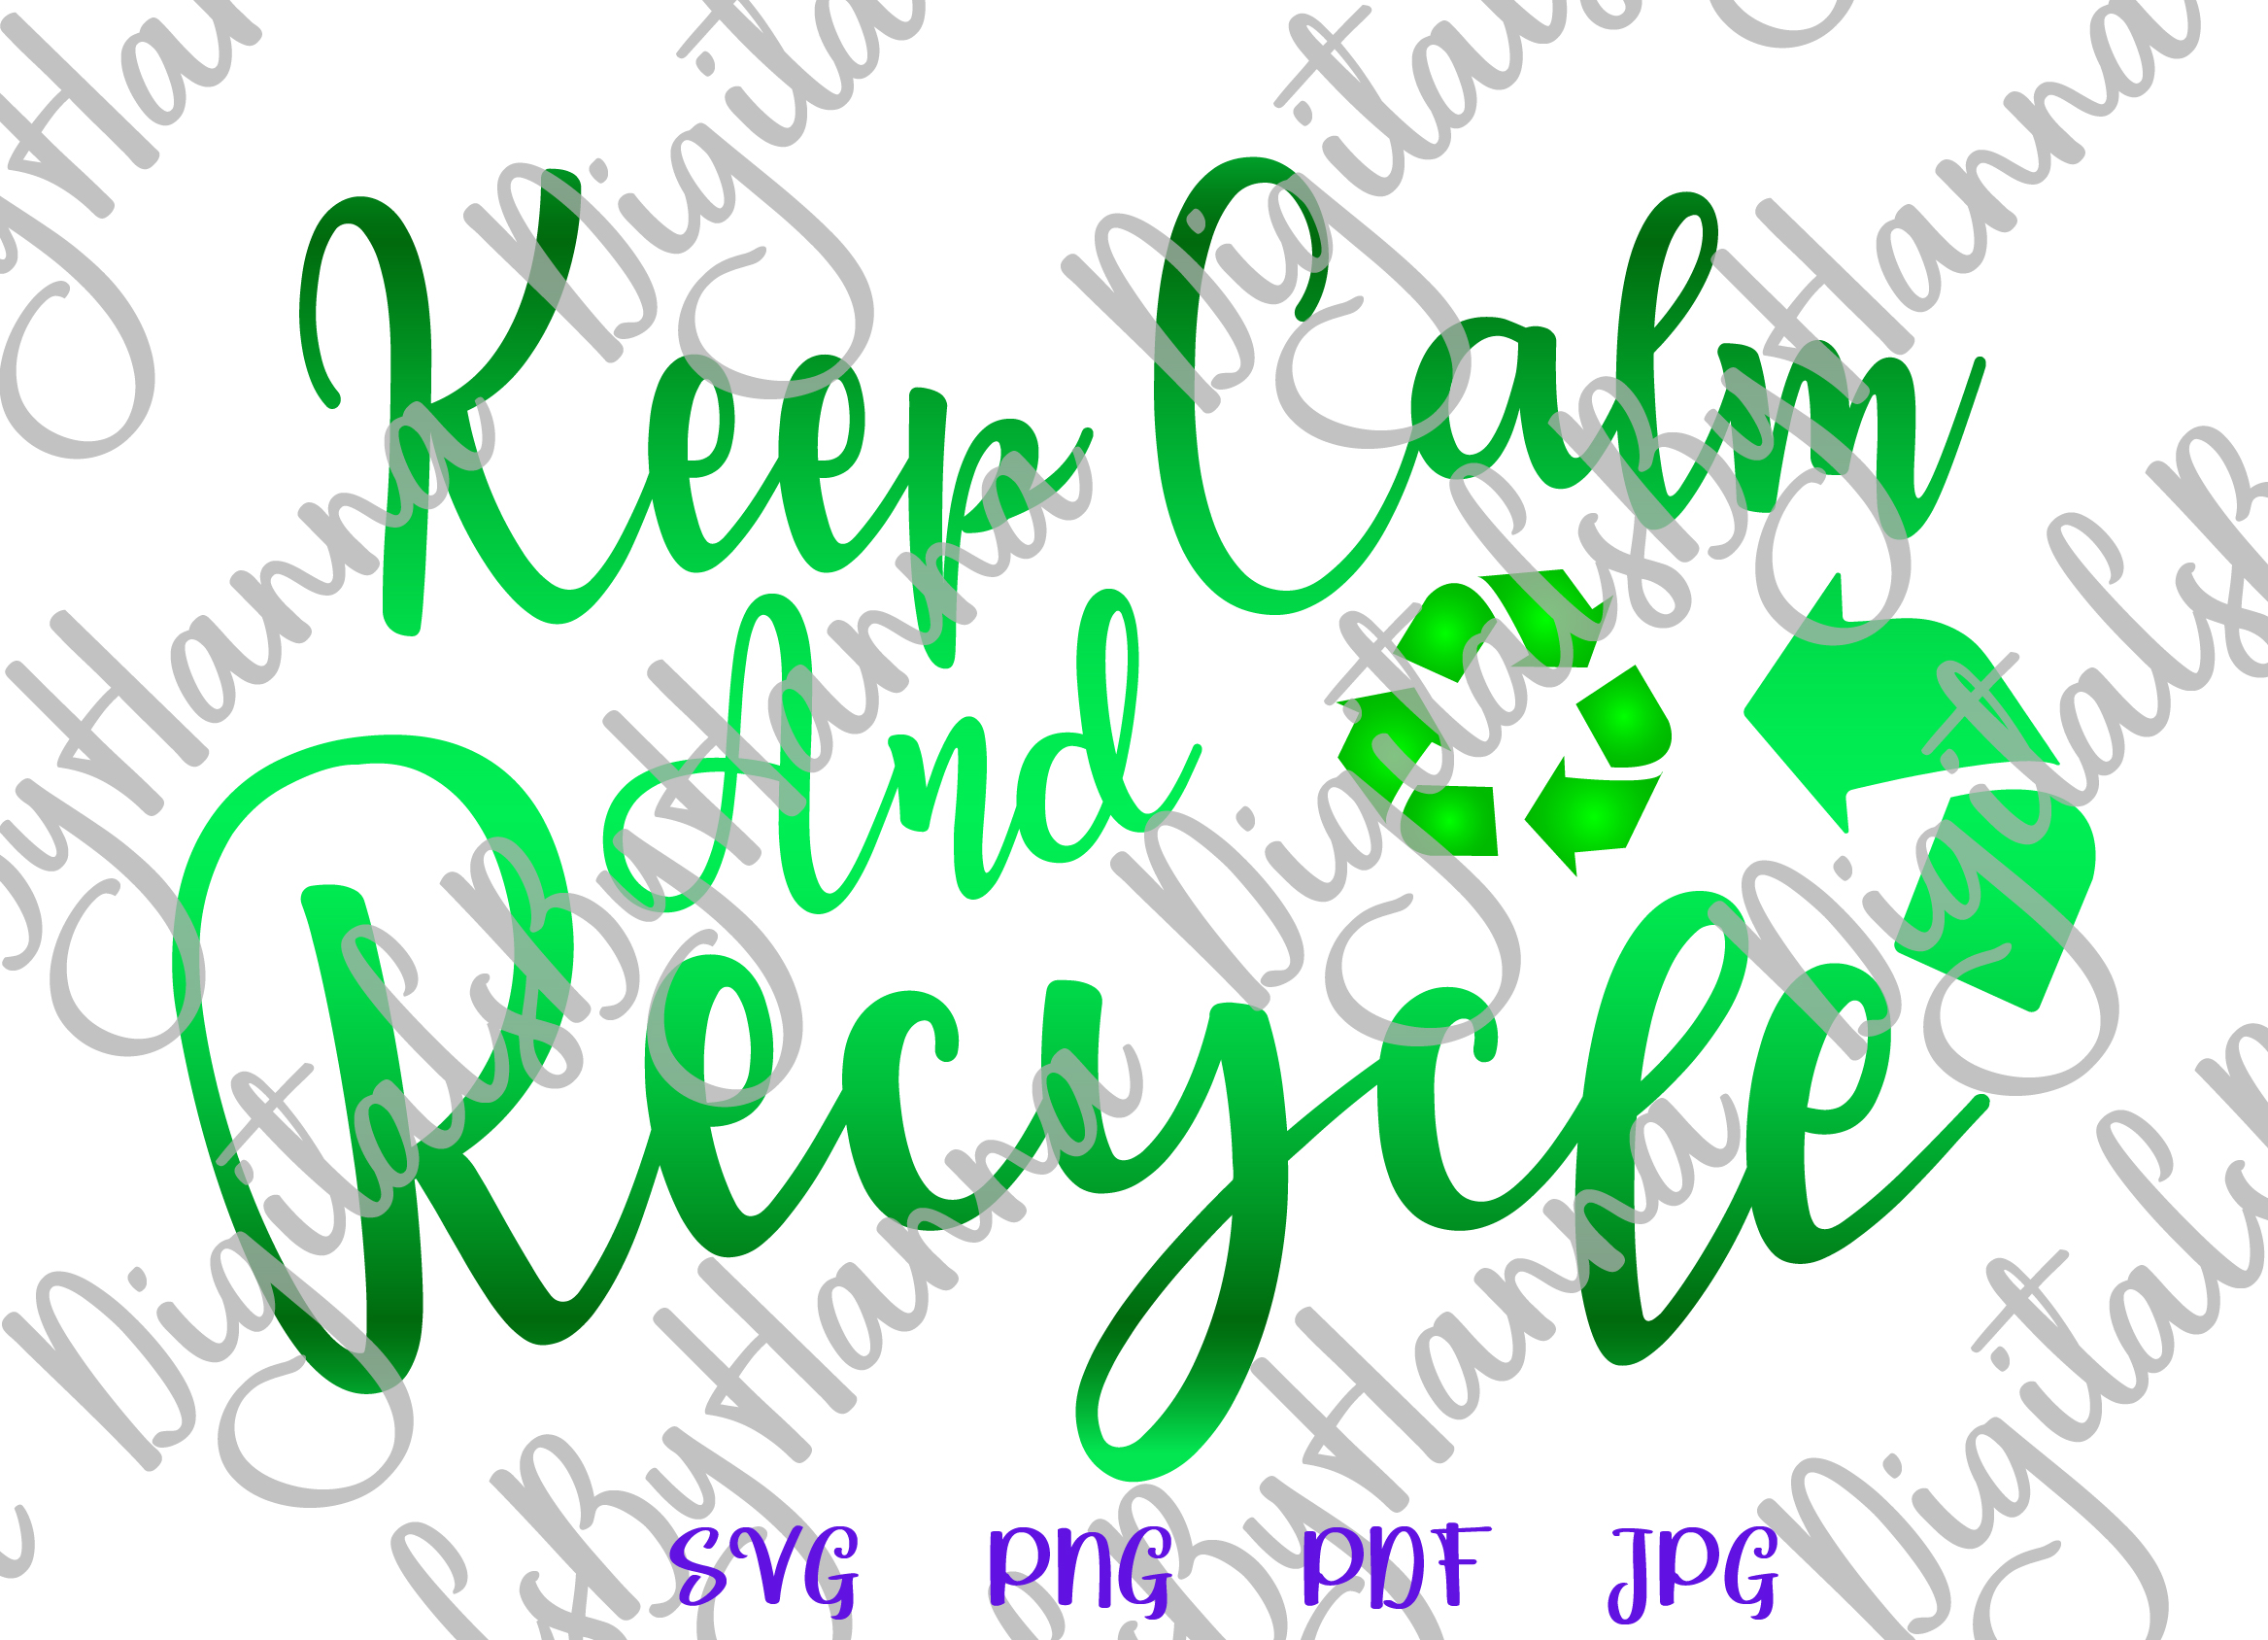 Keep Calm and Recycle Environment Motto Print & Cut PNG SVG example image 2